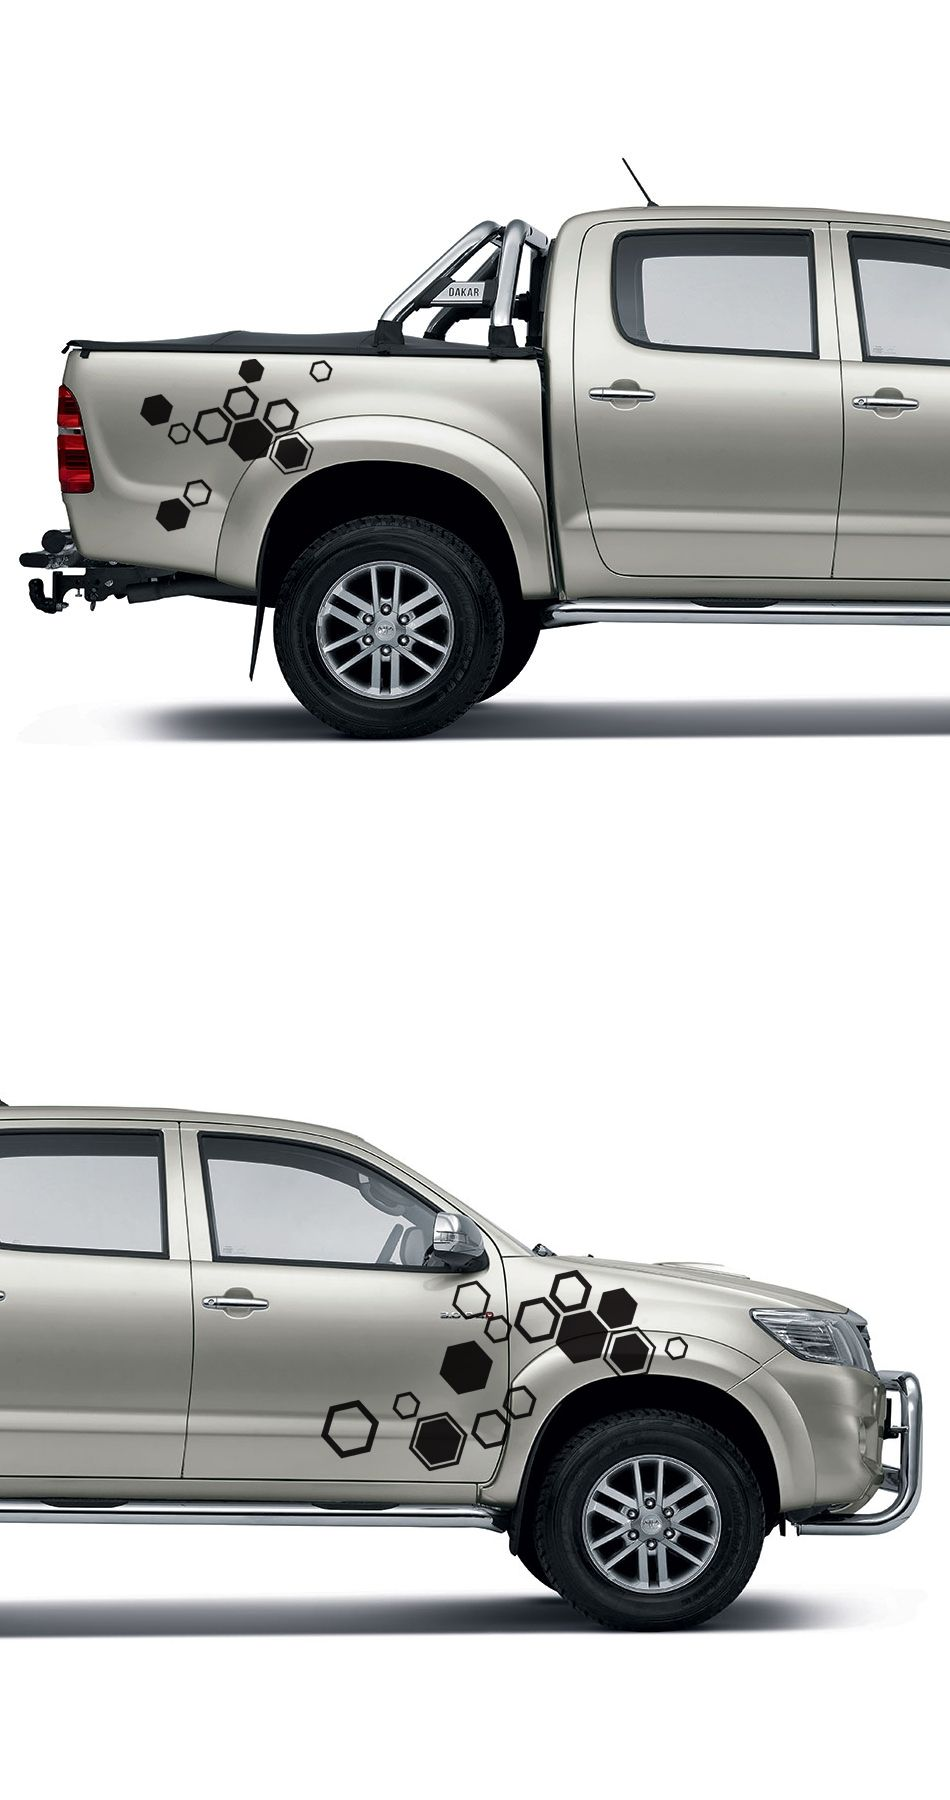 Free Shipping 2pc Hexagon Pattern Abstract Geometric Body Rear Tail 20032004 Toyota Sequoia Trailer Wiring Harness 4 Pin Flat Style Side Graphic Vinyl For Hilux